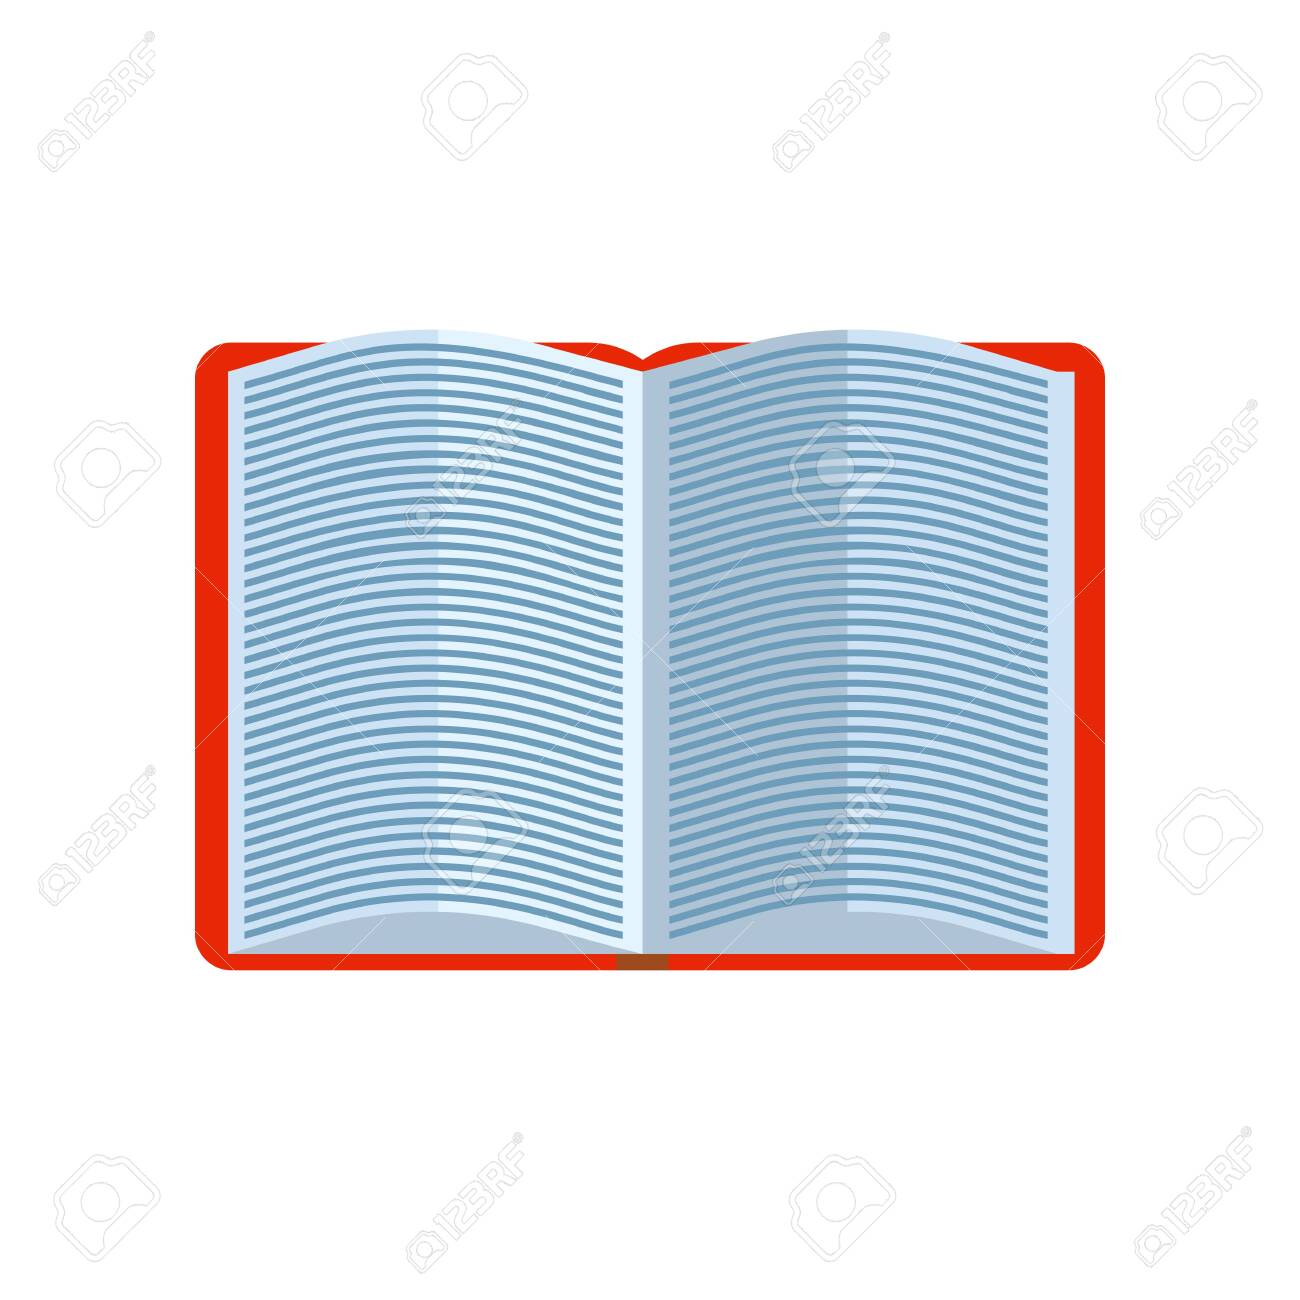 Opened book with small text  English dictionary  Can be used